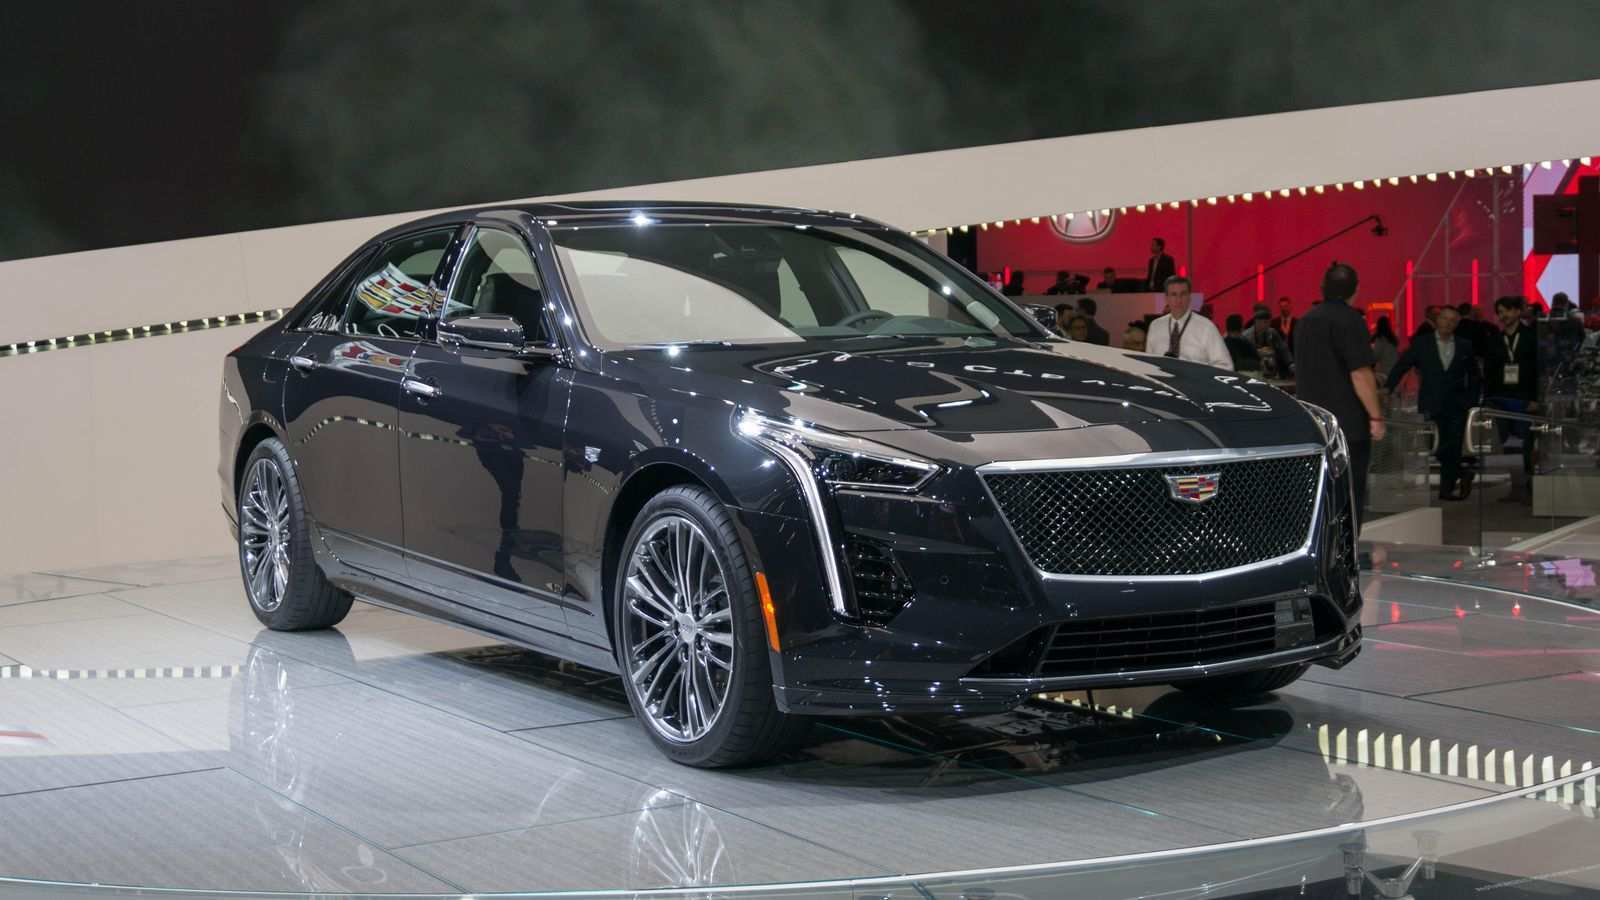 44 Best Review 2019 Cadillac Sedan Prices by 2019 Cadillac Sedan